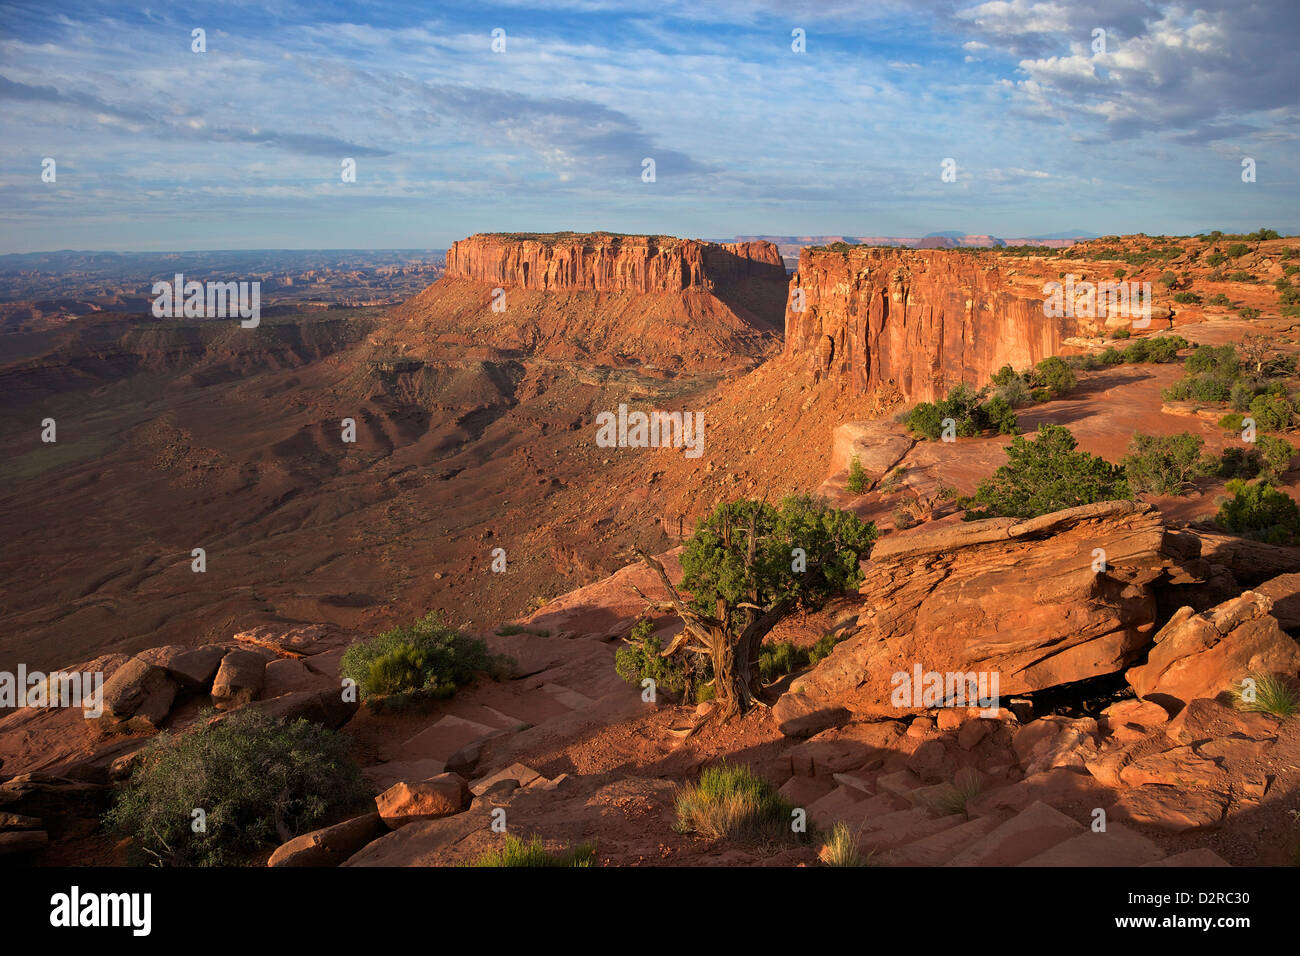 Grand View Point Overlook, Canyonlands National Park, Utah, United States of America, North America - Stock Image